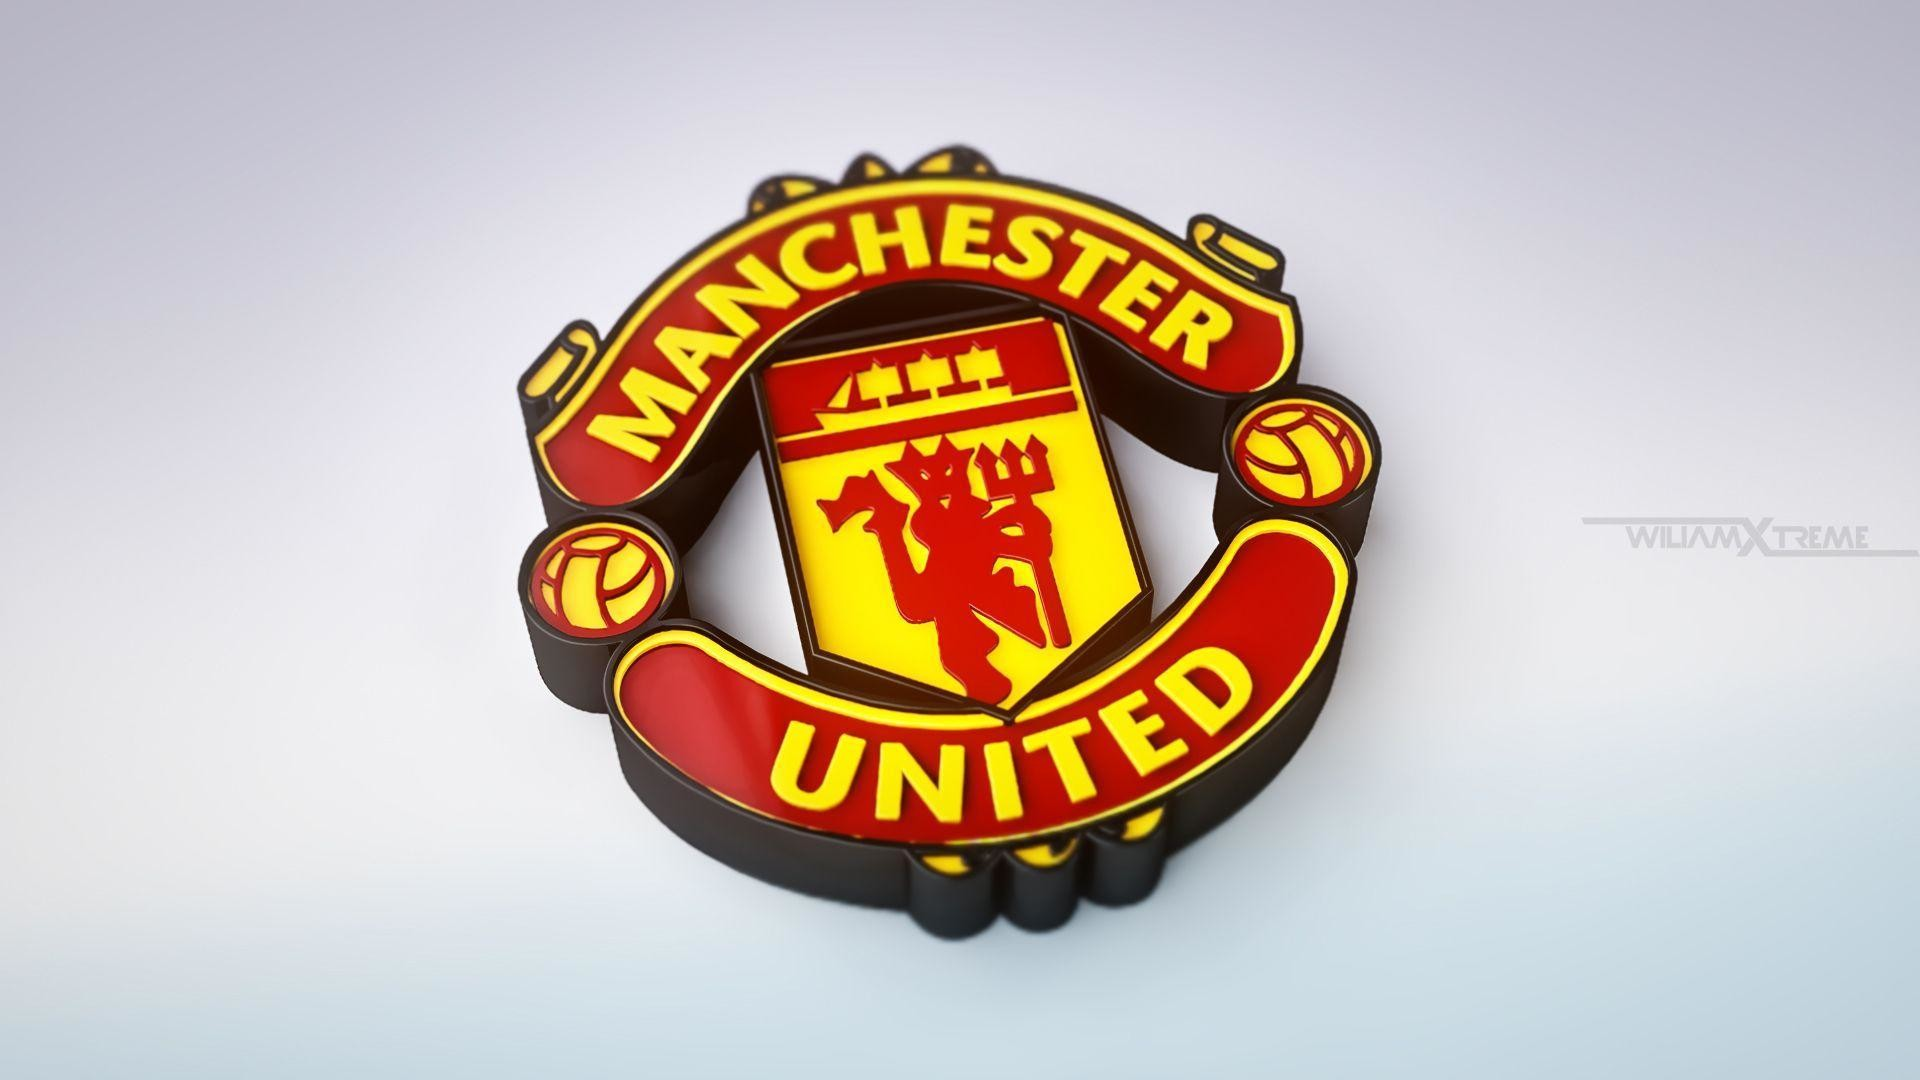 Wallpaper Logo Manchester United Terbaru 2018 70 Pictures